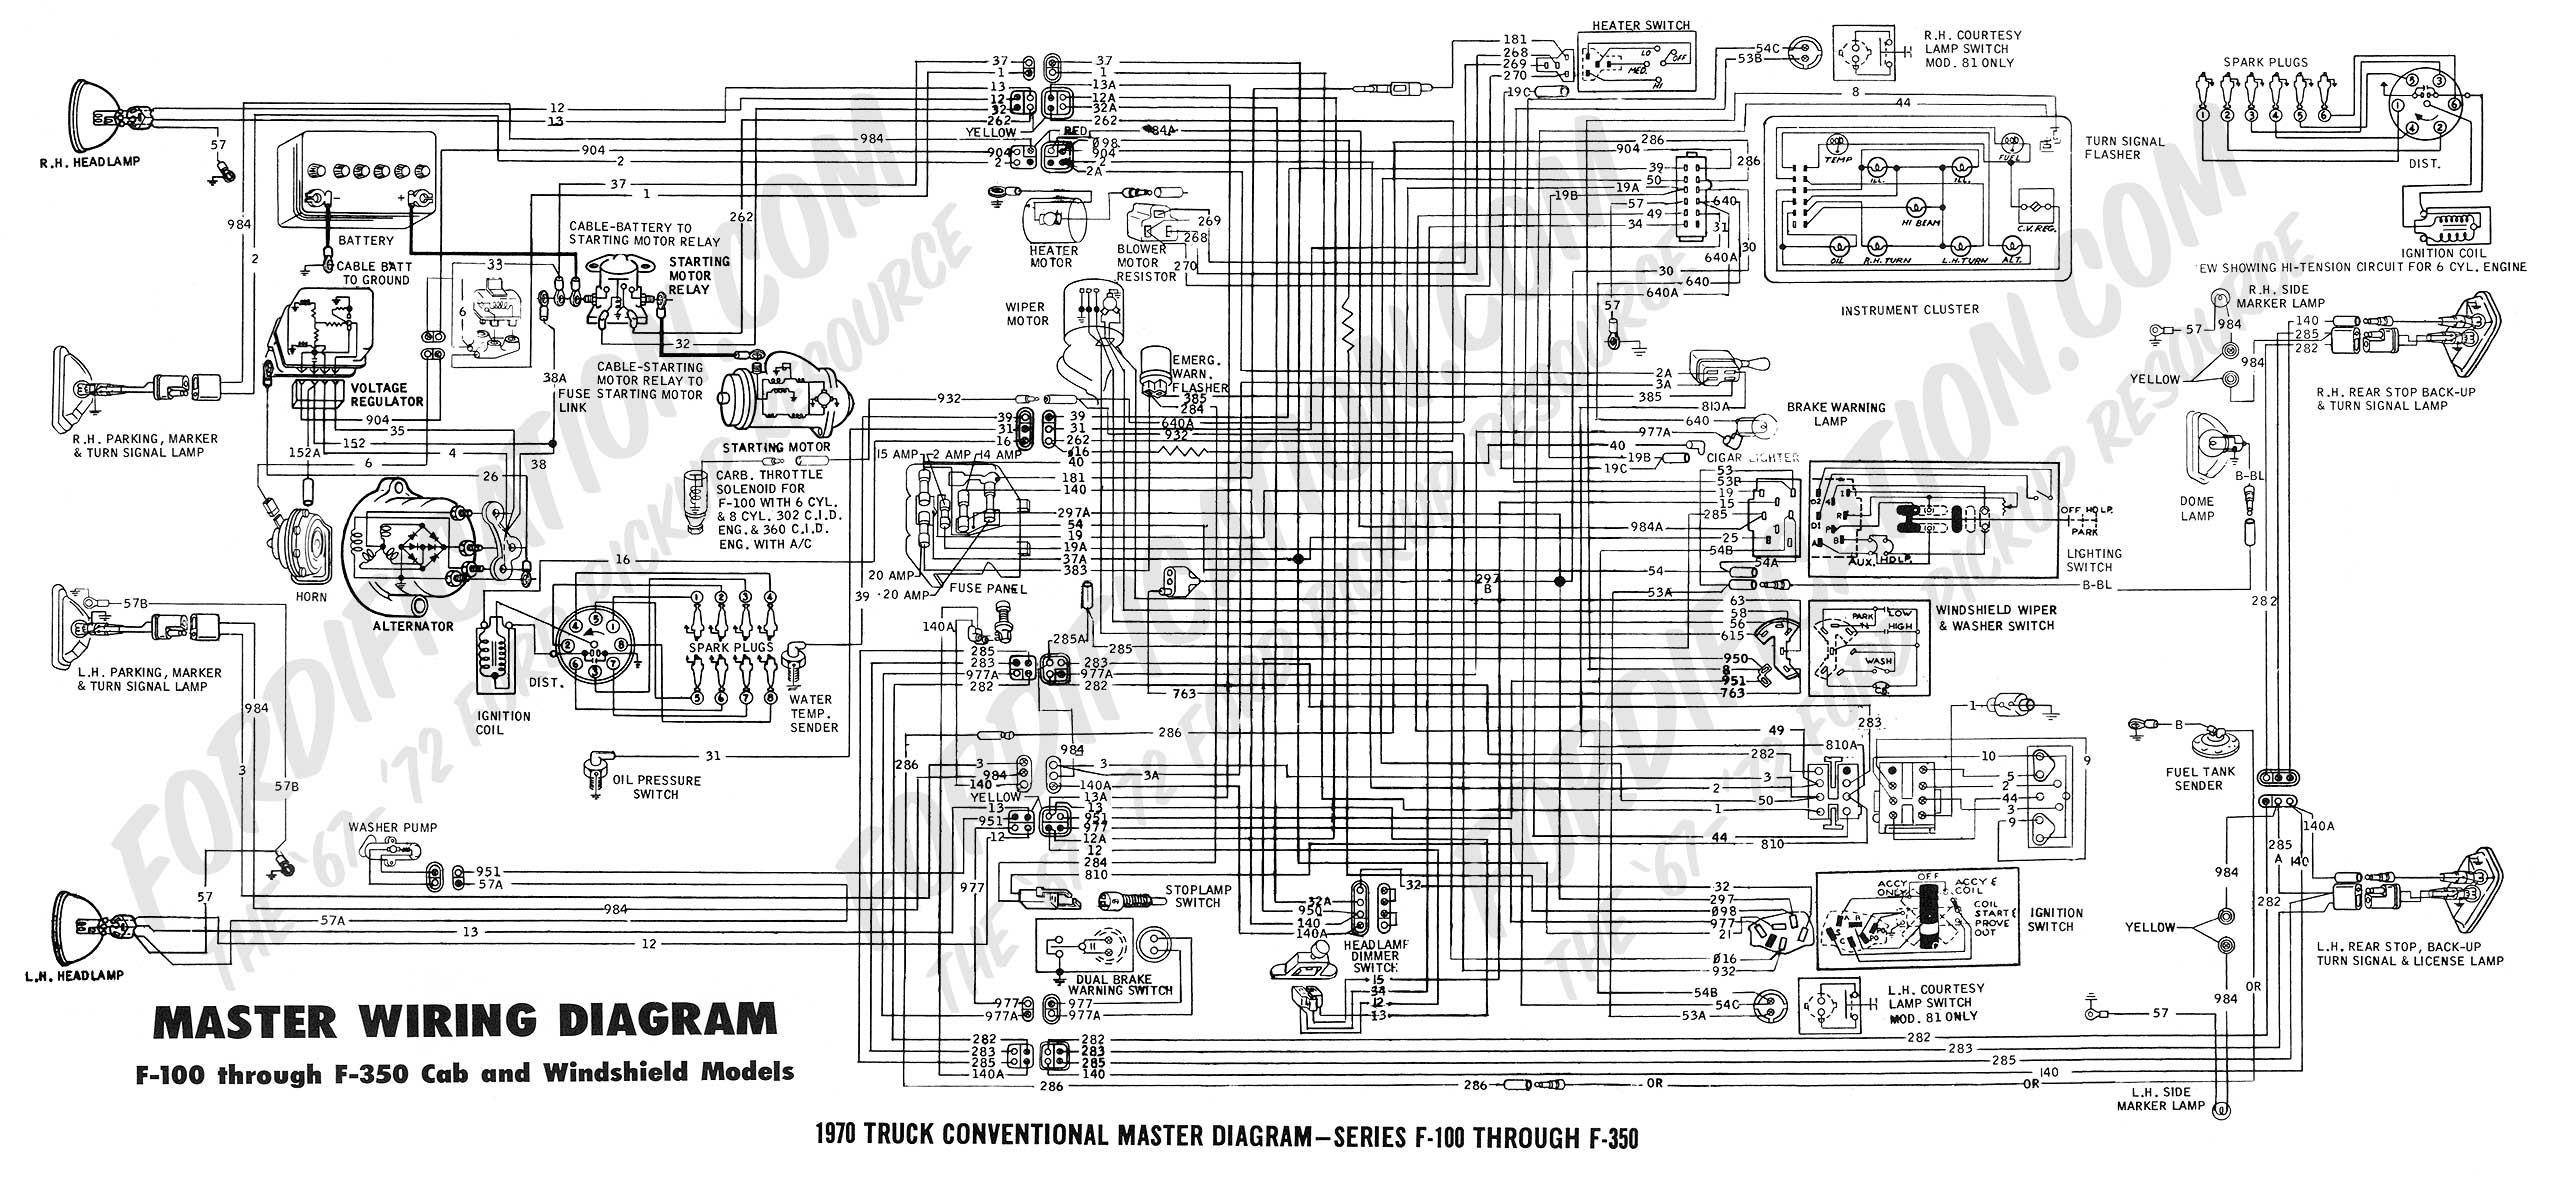 wiring diagram 70_master f450 wiring diagram f250 wiring diagram 2016 \u2022 wiring diagrams j 1988 Ford Truck Wiring Diagrams at creativeand.co